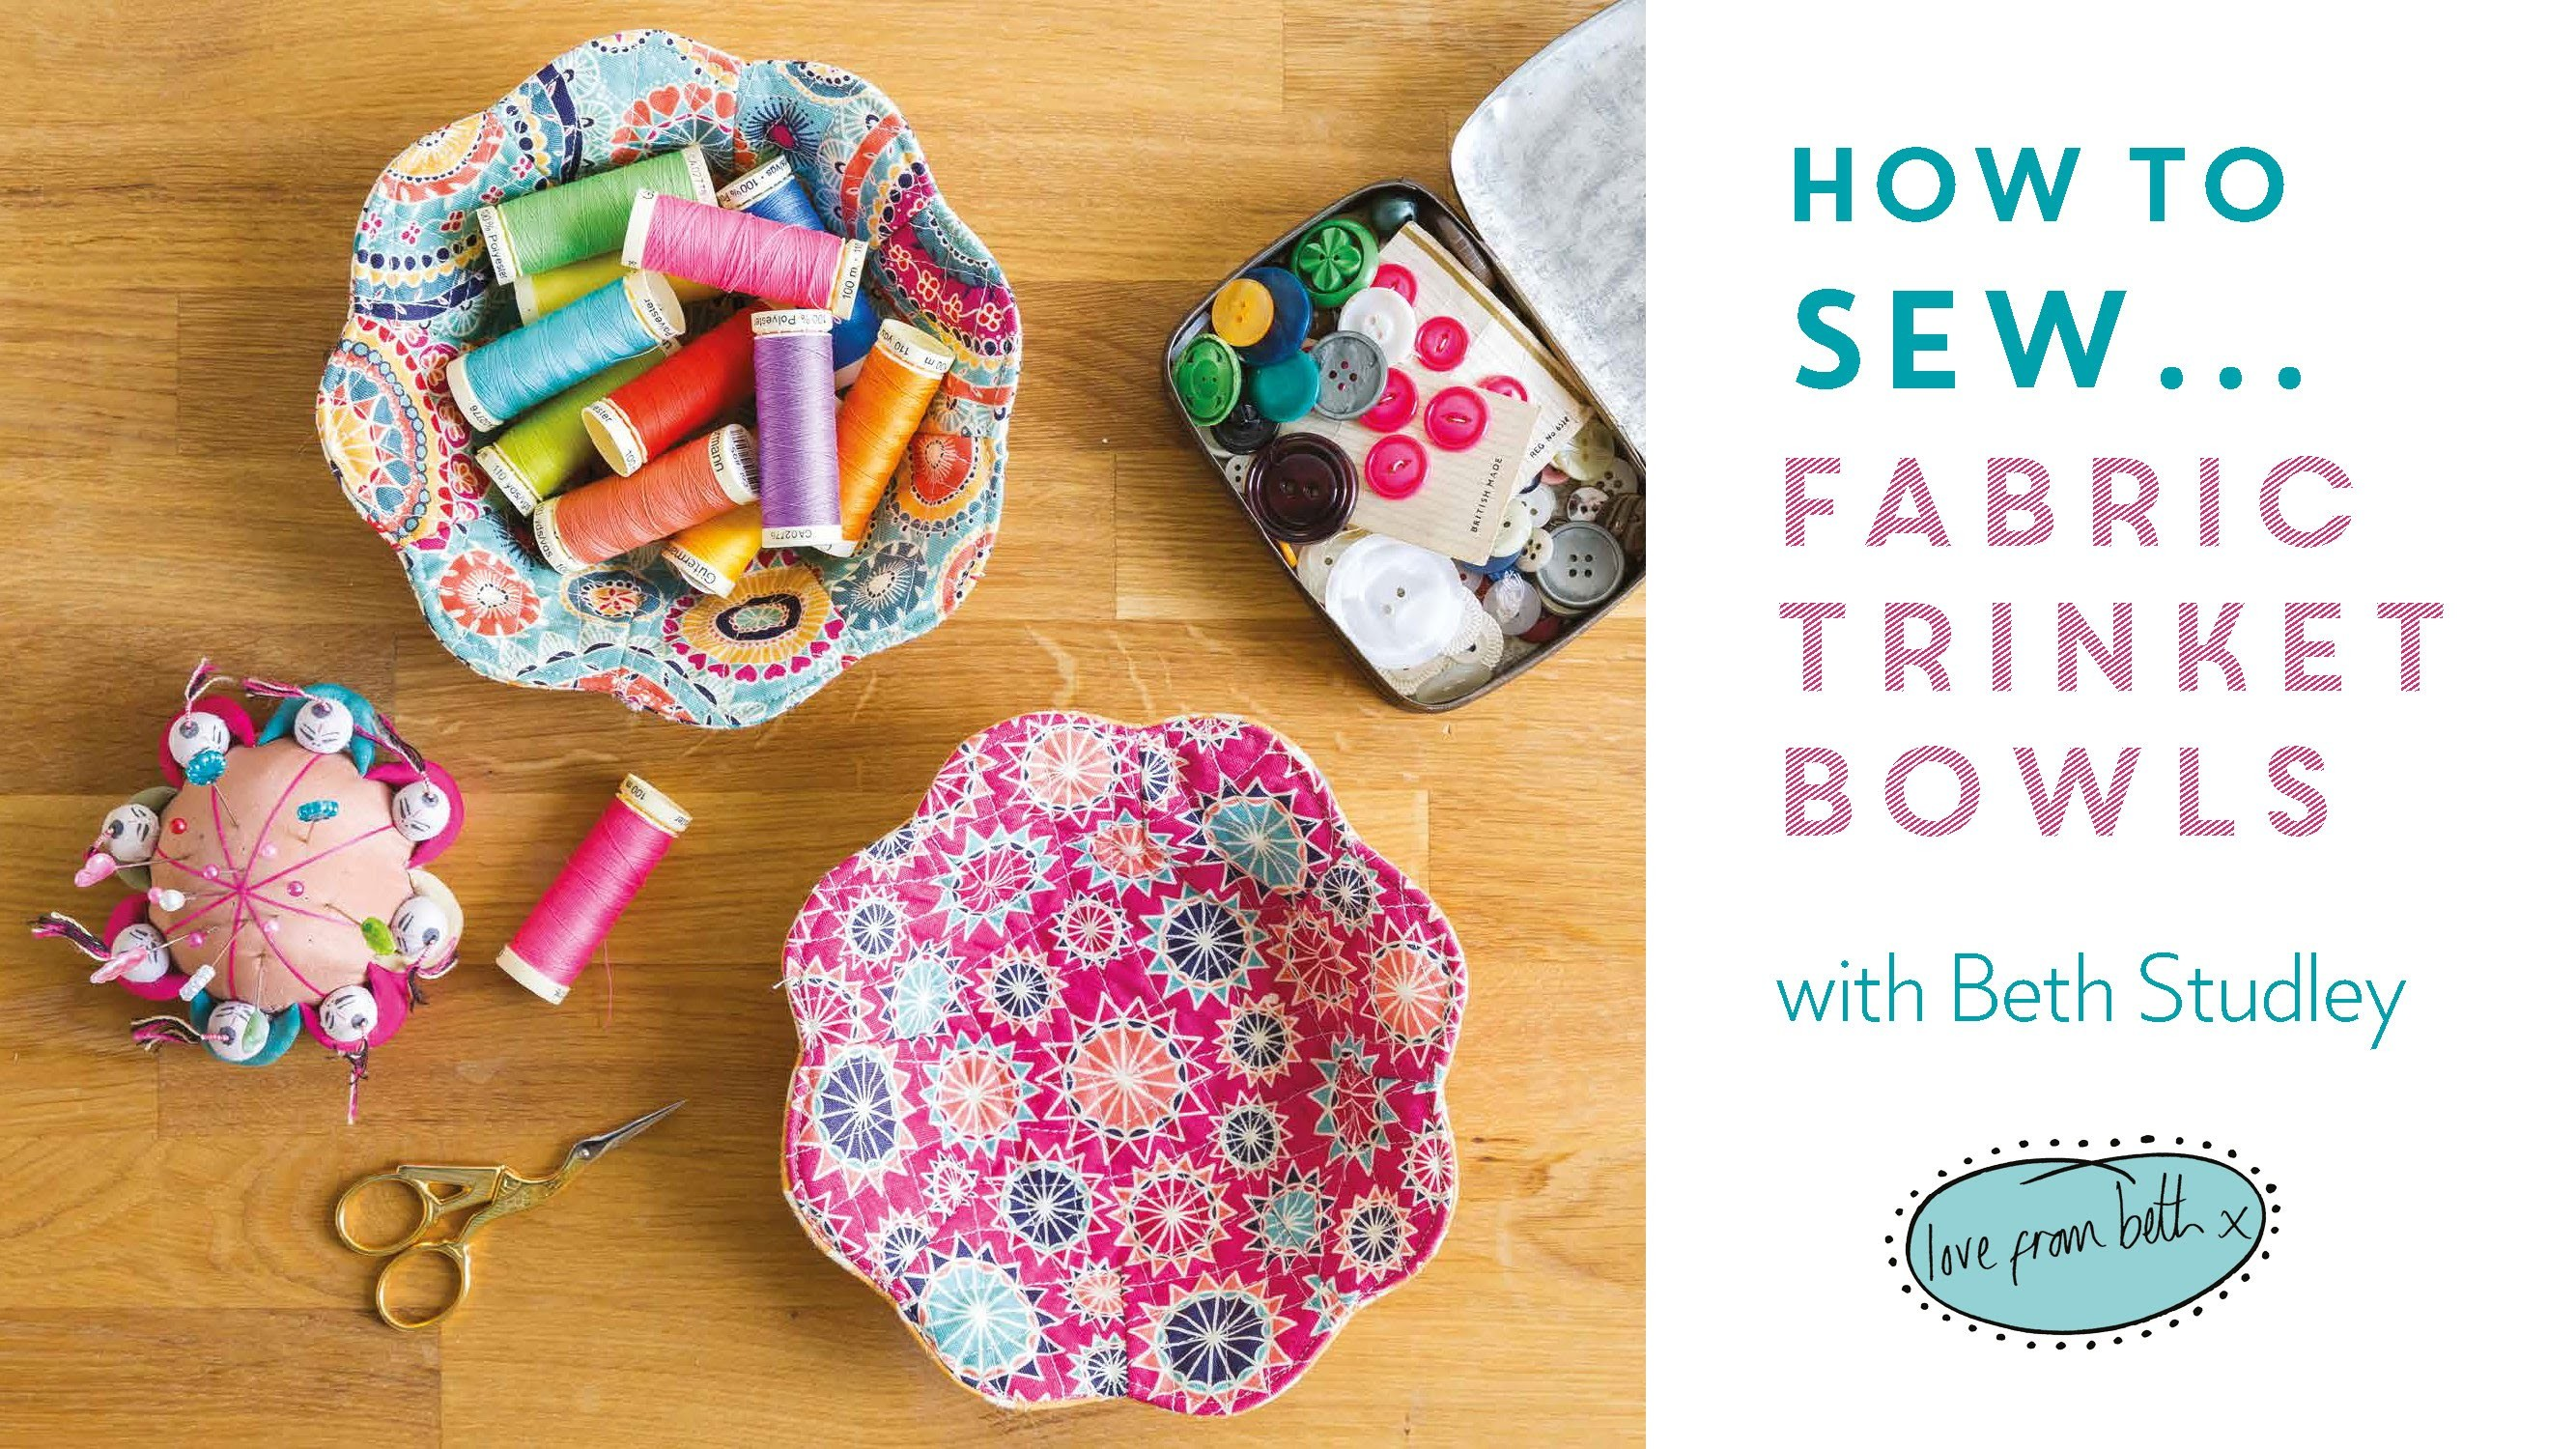 How to Sew Fabric Trinket Bowls PREVIEW